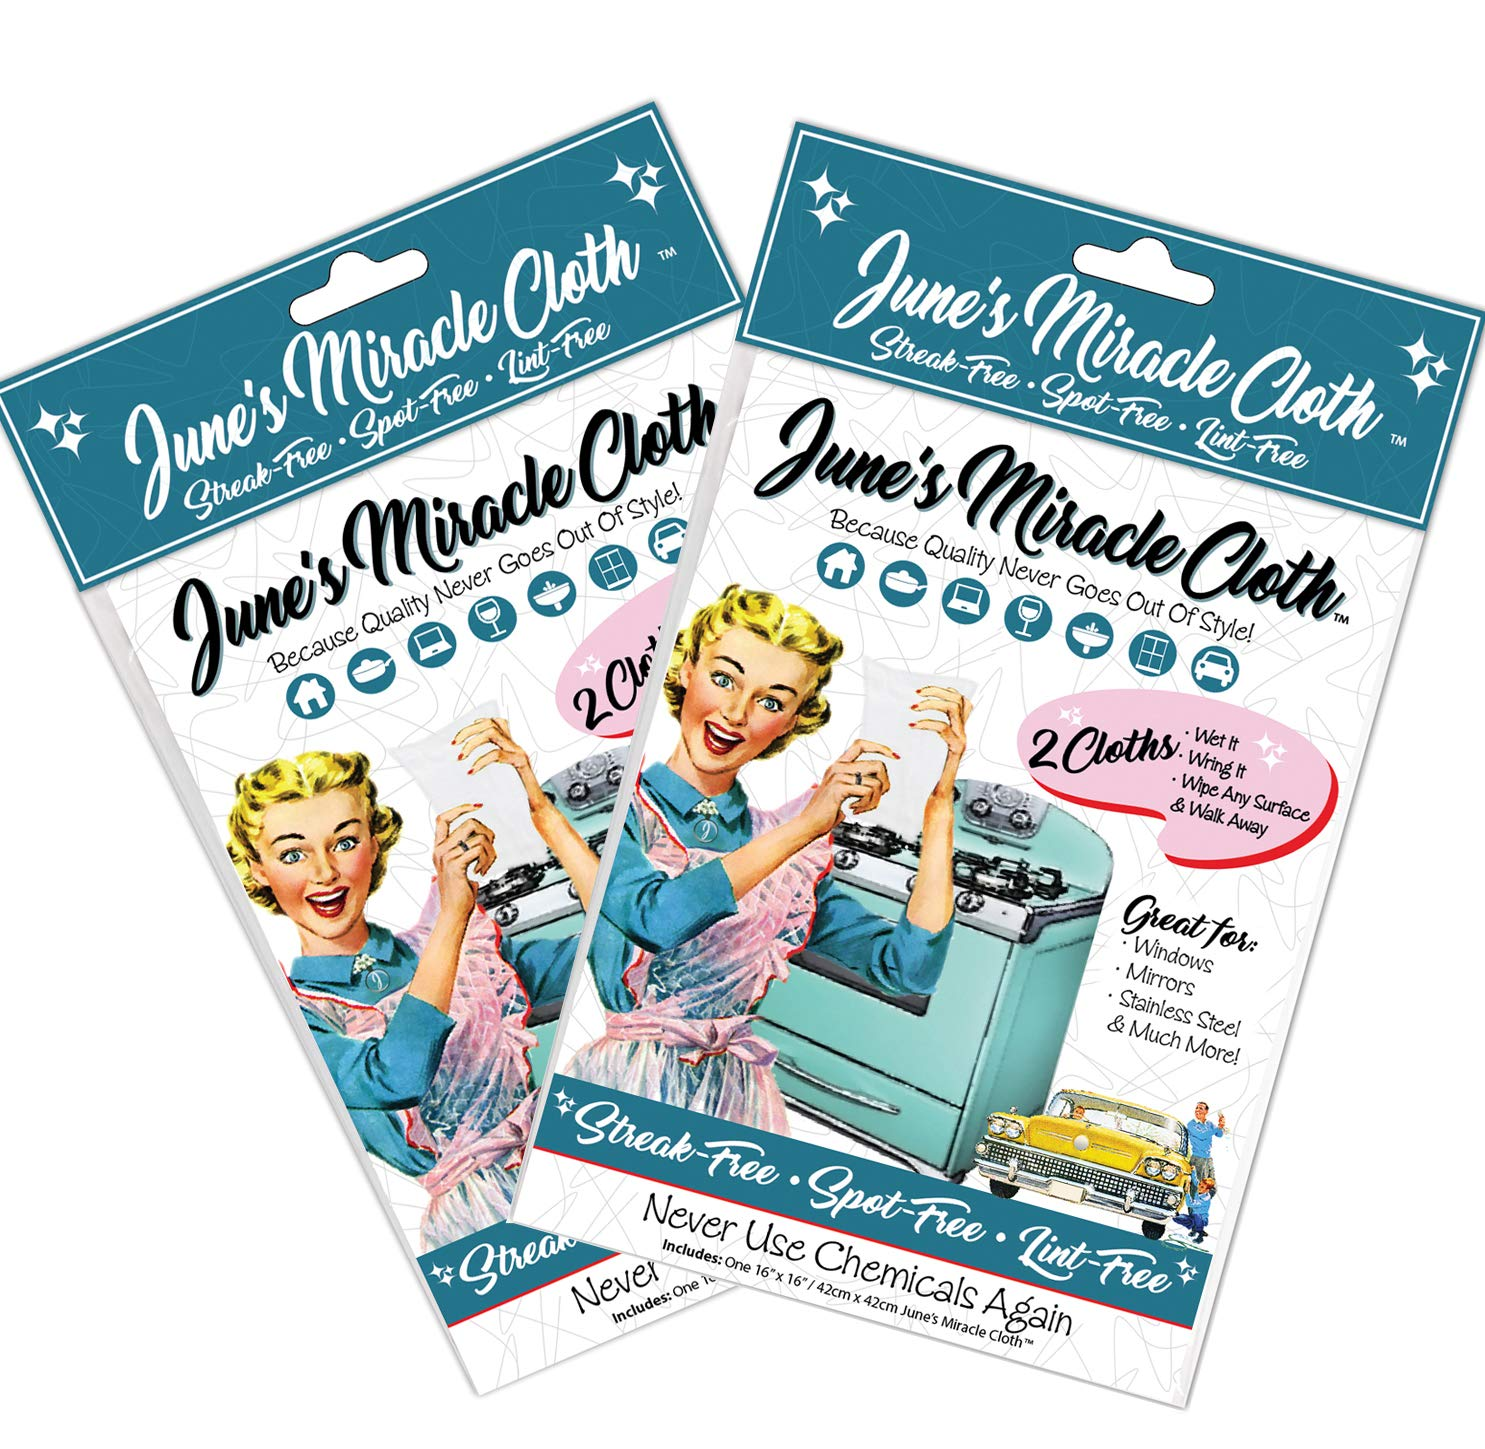 Home Spirit June's Miracle Cloth, Streak Free Microfiber Cloth, Window Cloth, Car Detailing Towels, Glass Polishing Cloth, Lint Free Cloths, Stainless Steel Wipes, 2x2pk, (Total 4 Sheets) 4pk